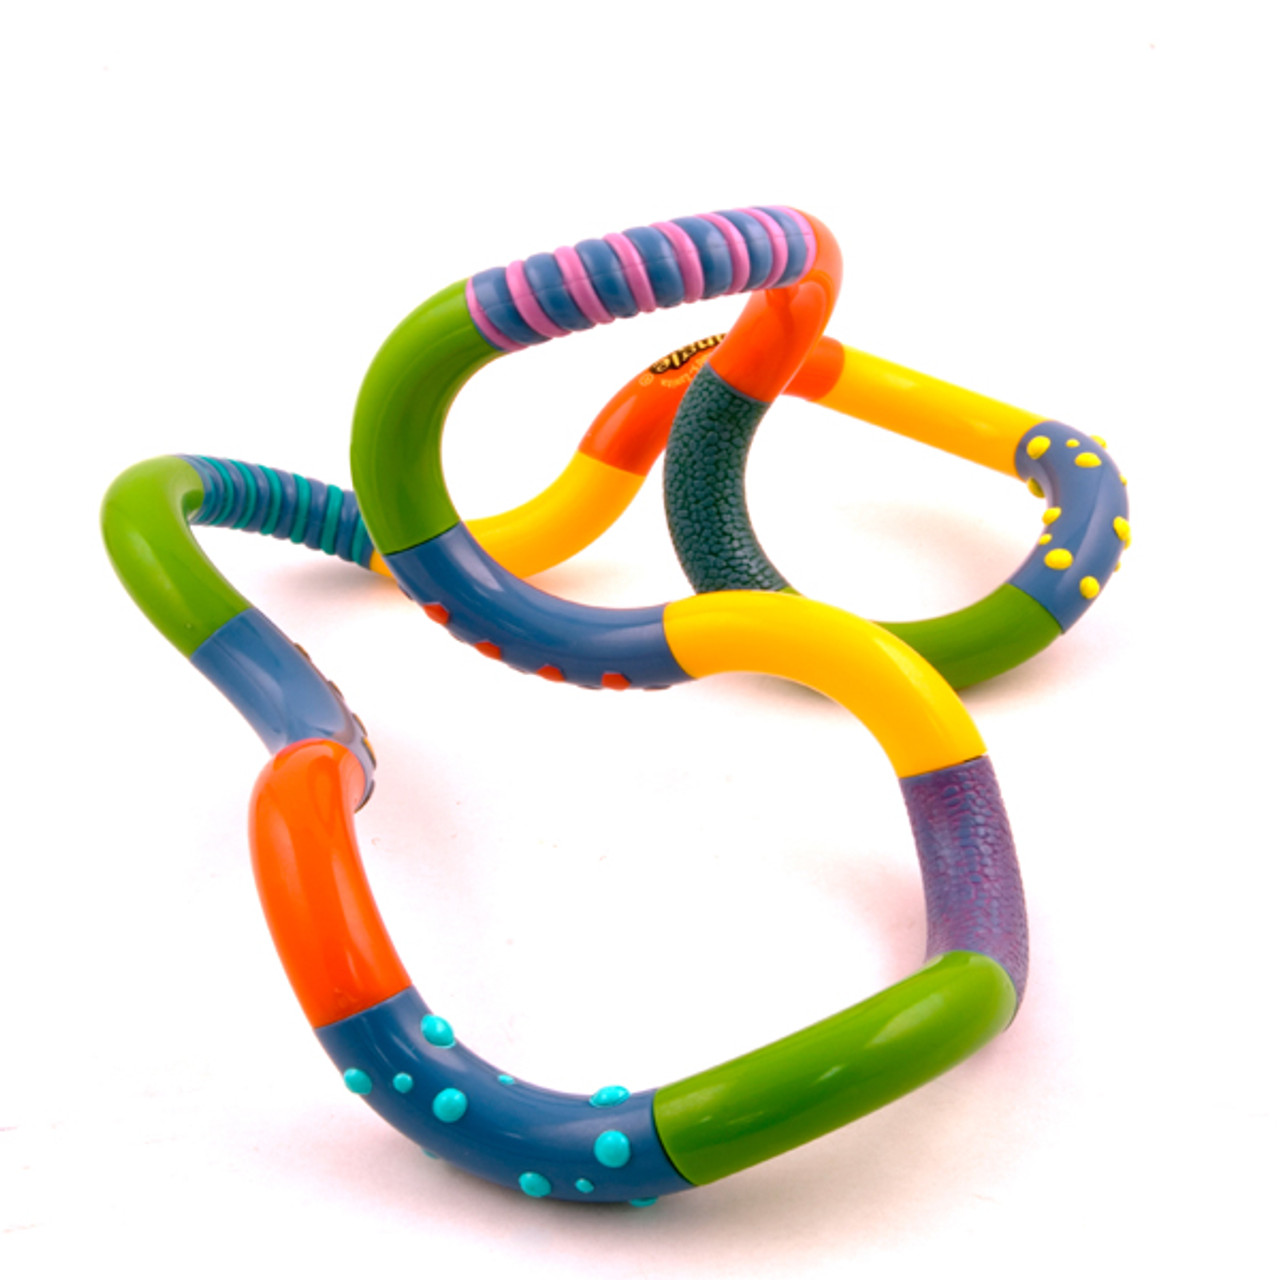 original tangle with texture sensory toys for kids with autism